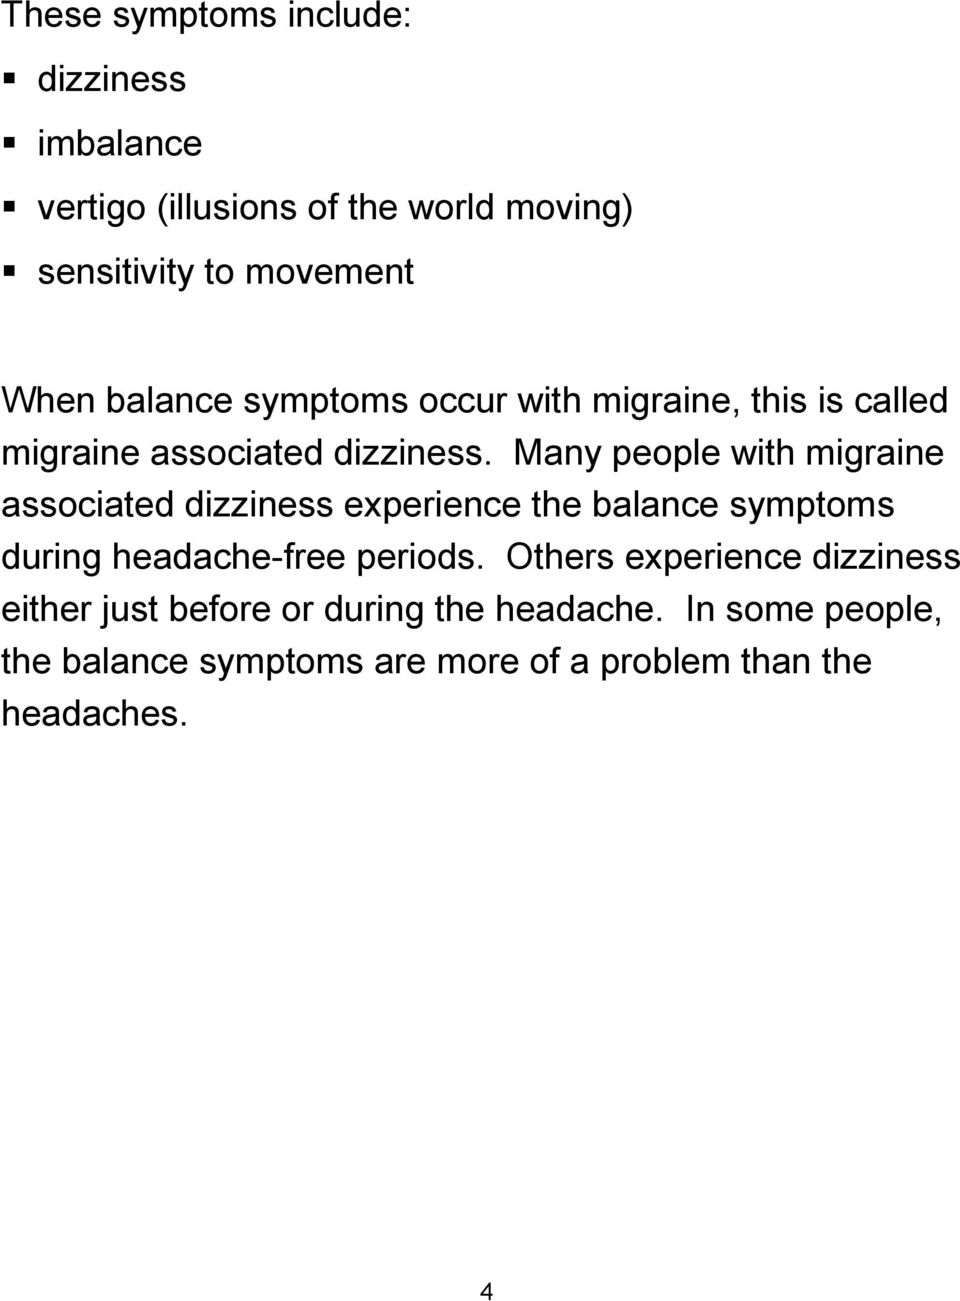 Many people with migraine associated dizziness experience the balance symptoms during headache-free periods.